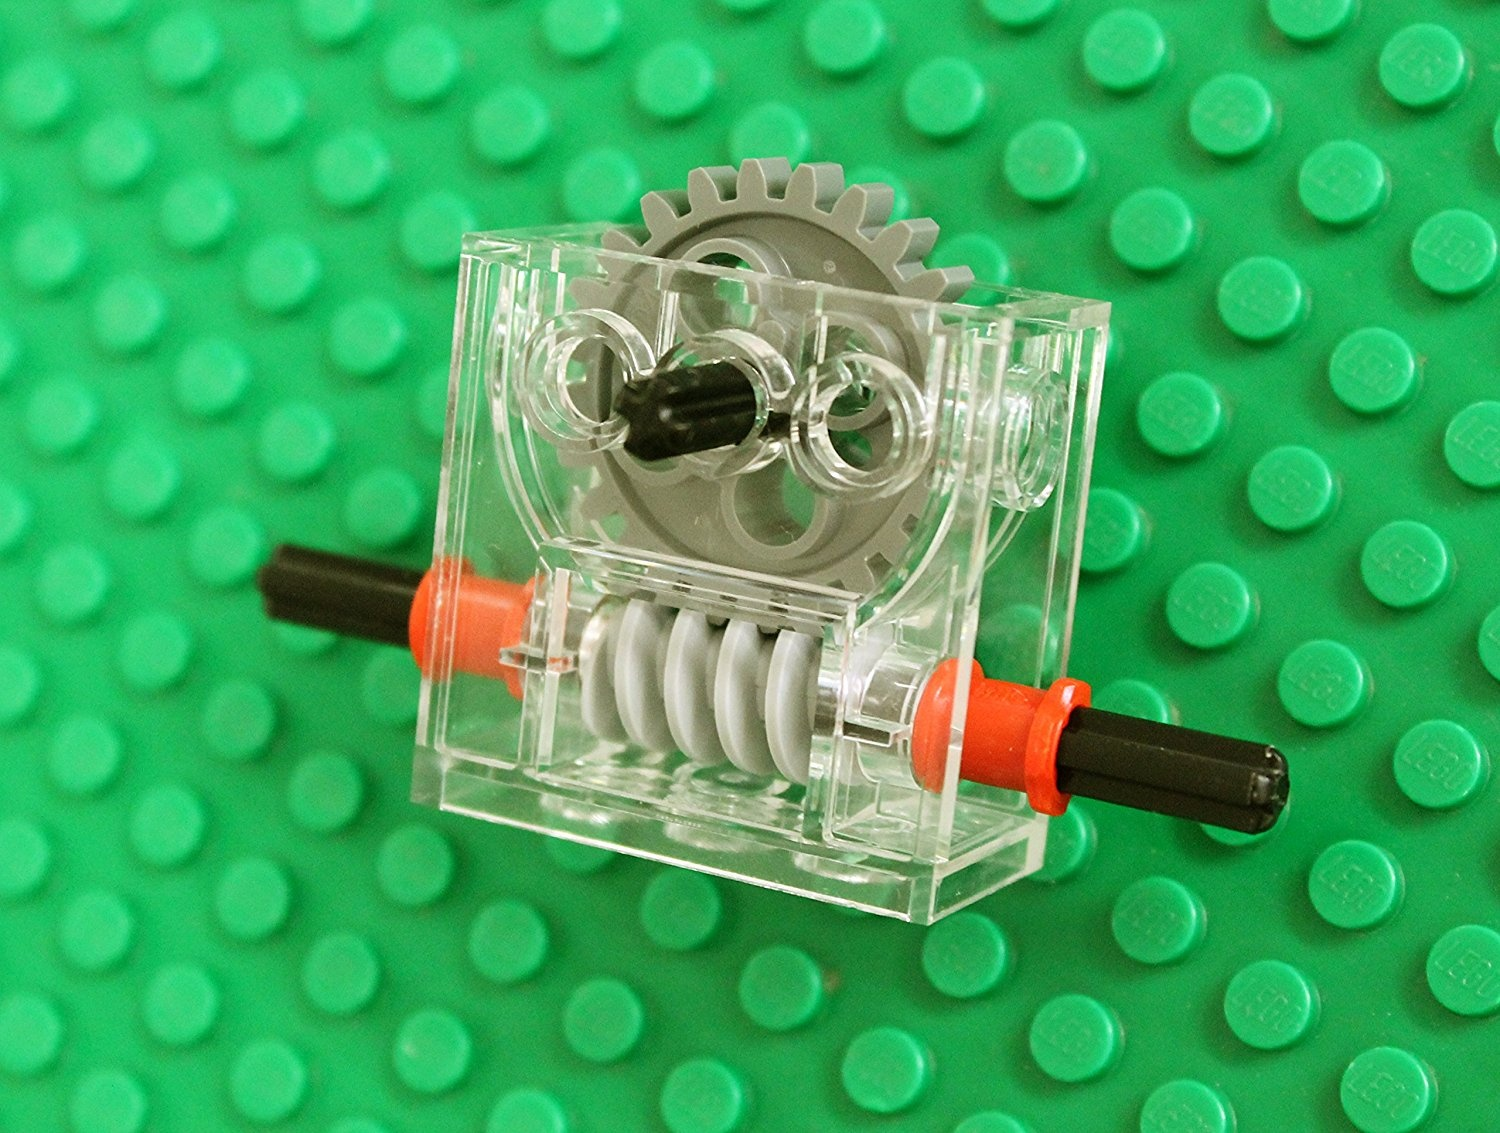 Lego Gear REDUCER Blocks technic,mindstorms,nxt,gearbox,worm,axle,compact,robot